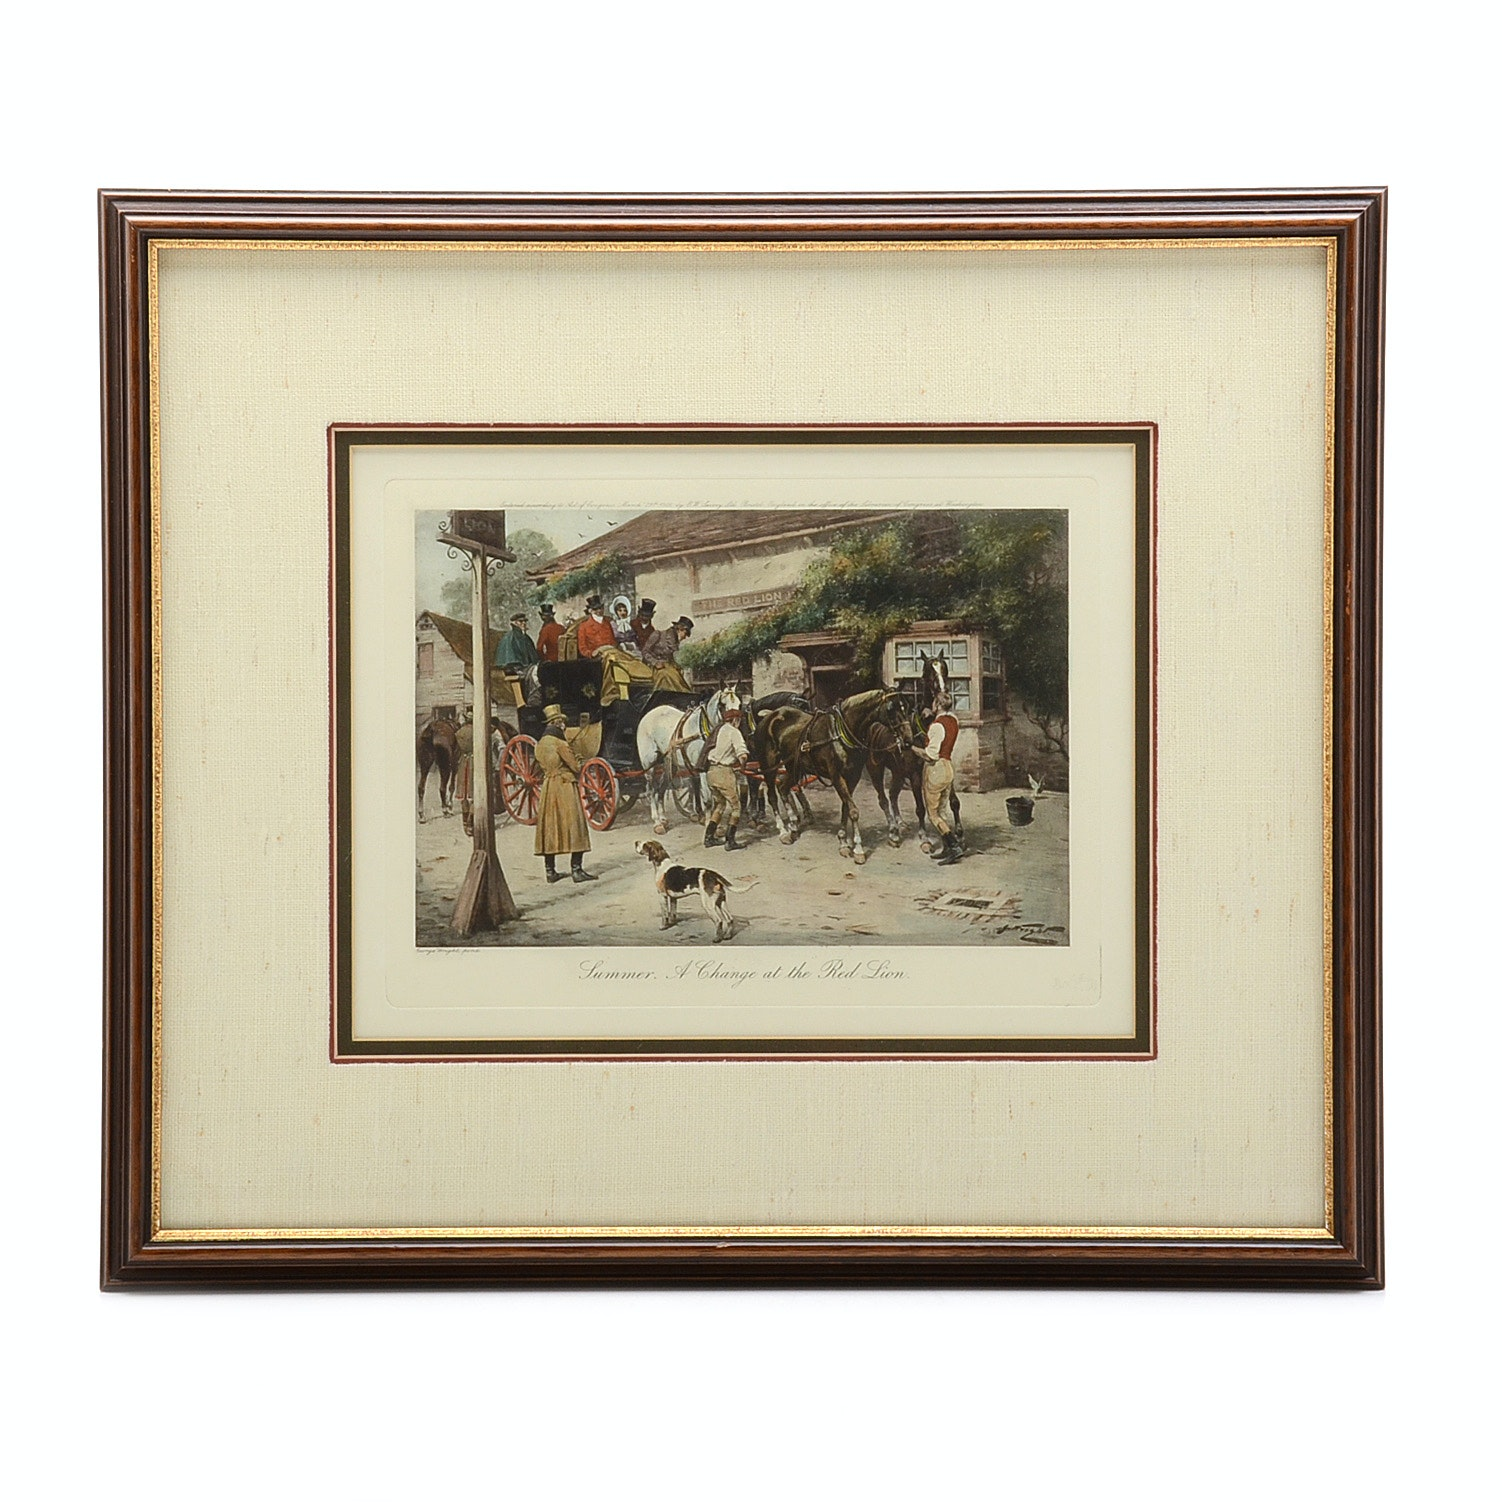 Engraving after 'Summer. A Change at the Red Lion'George Wright